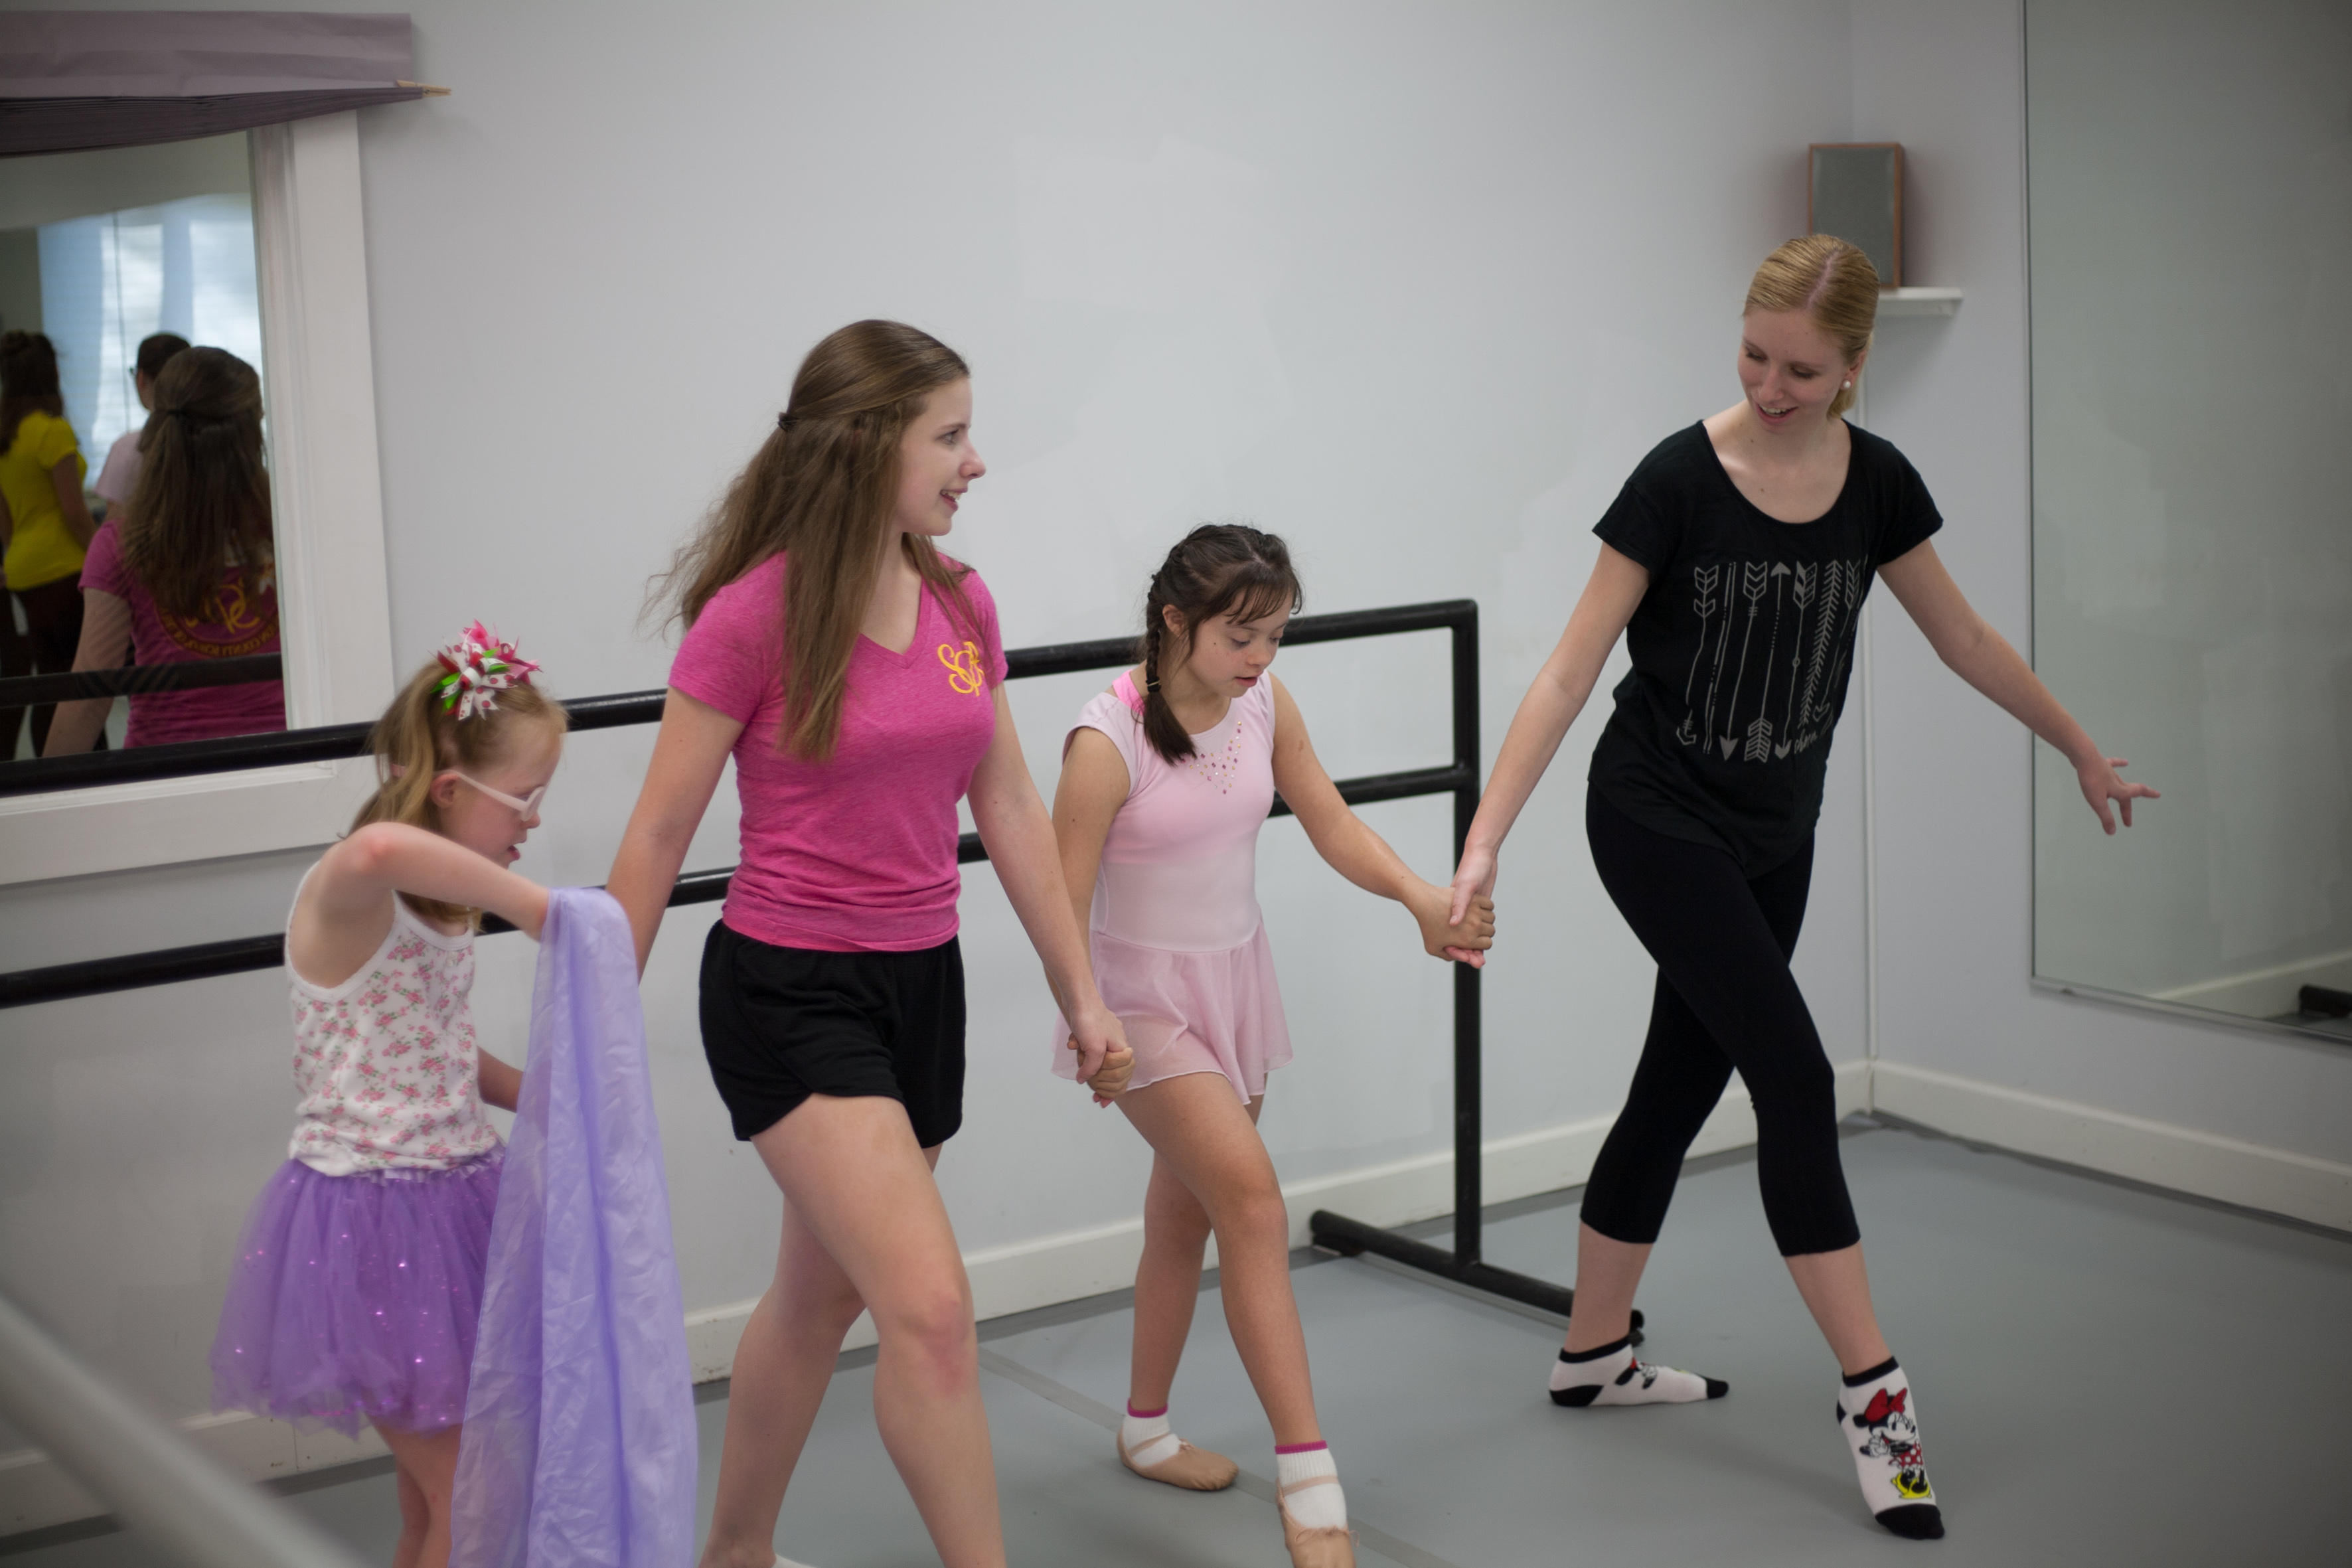 kids with down syndrome get free ballet classes and its